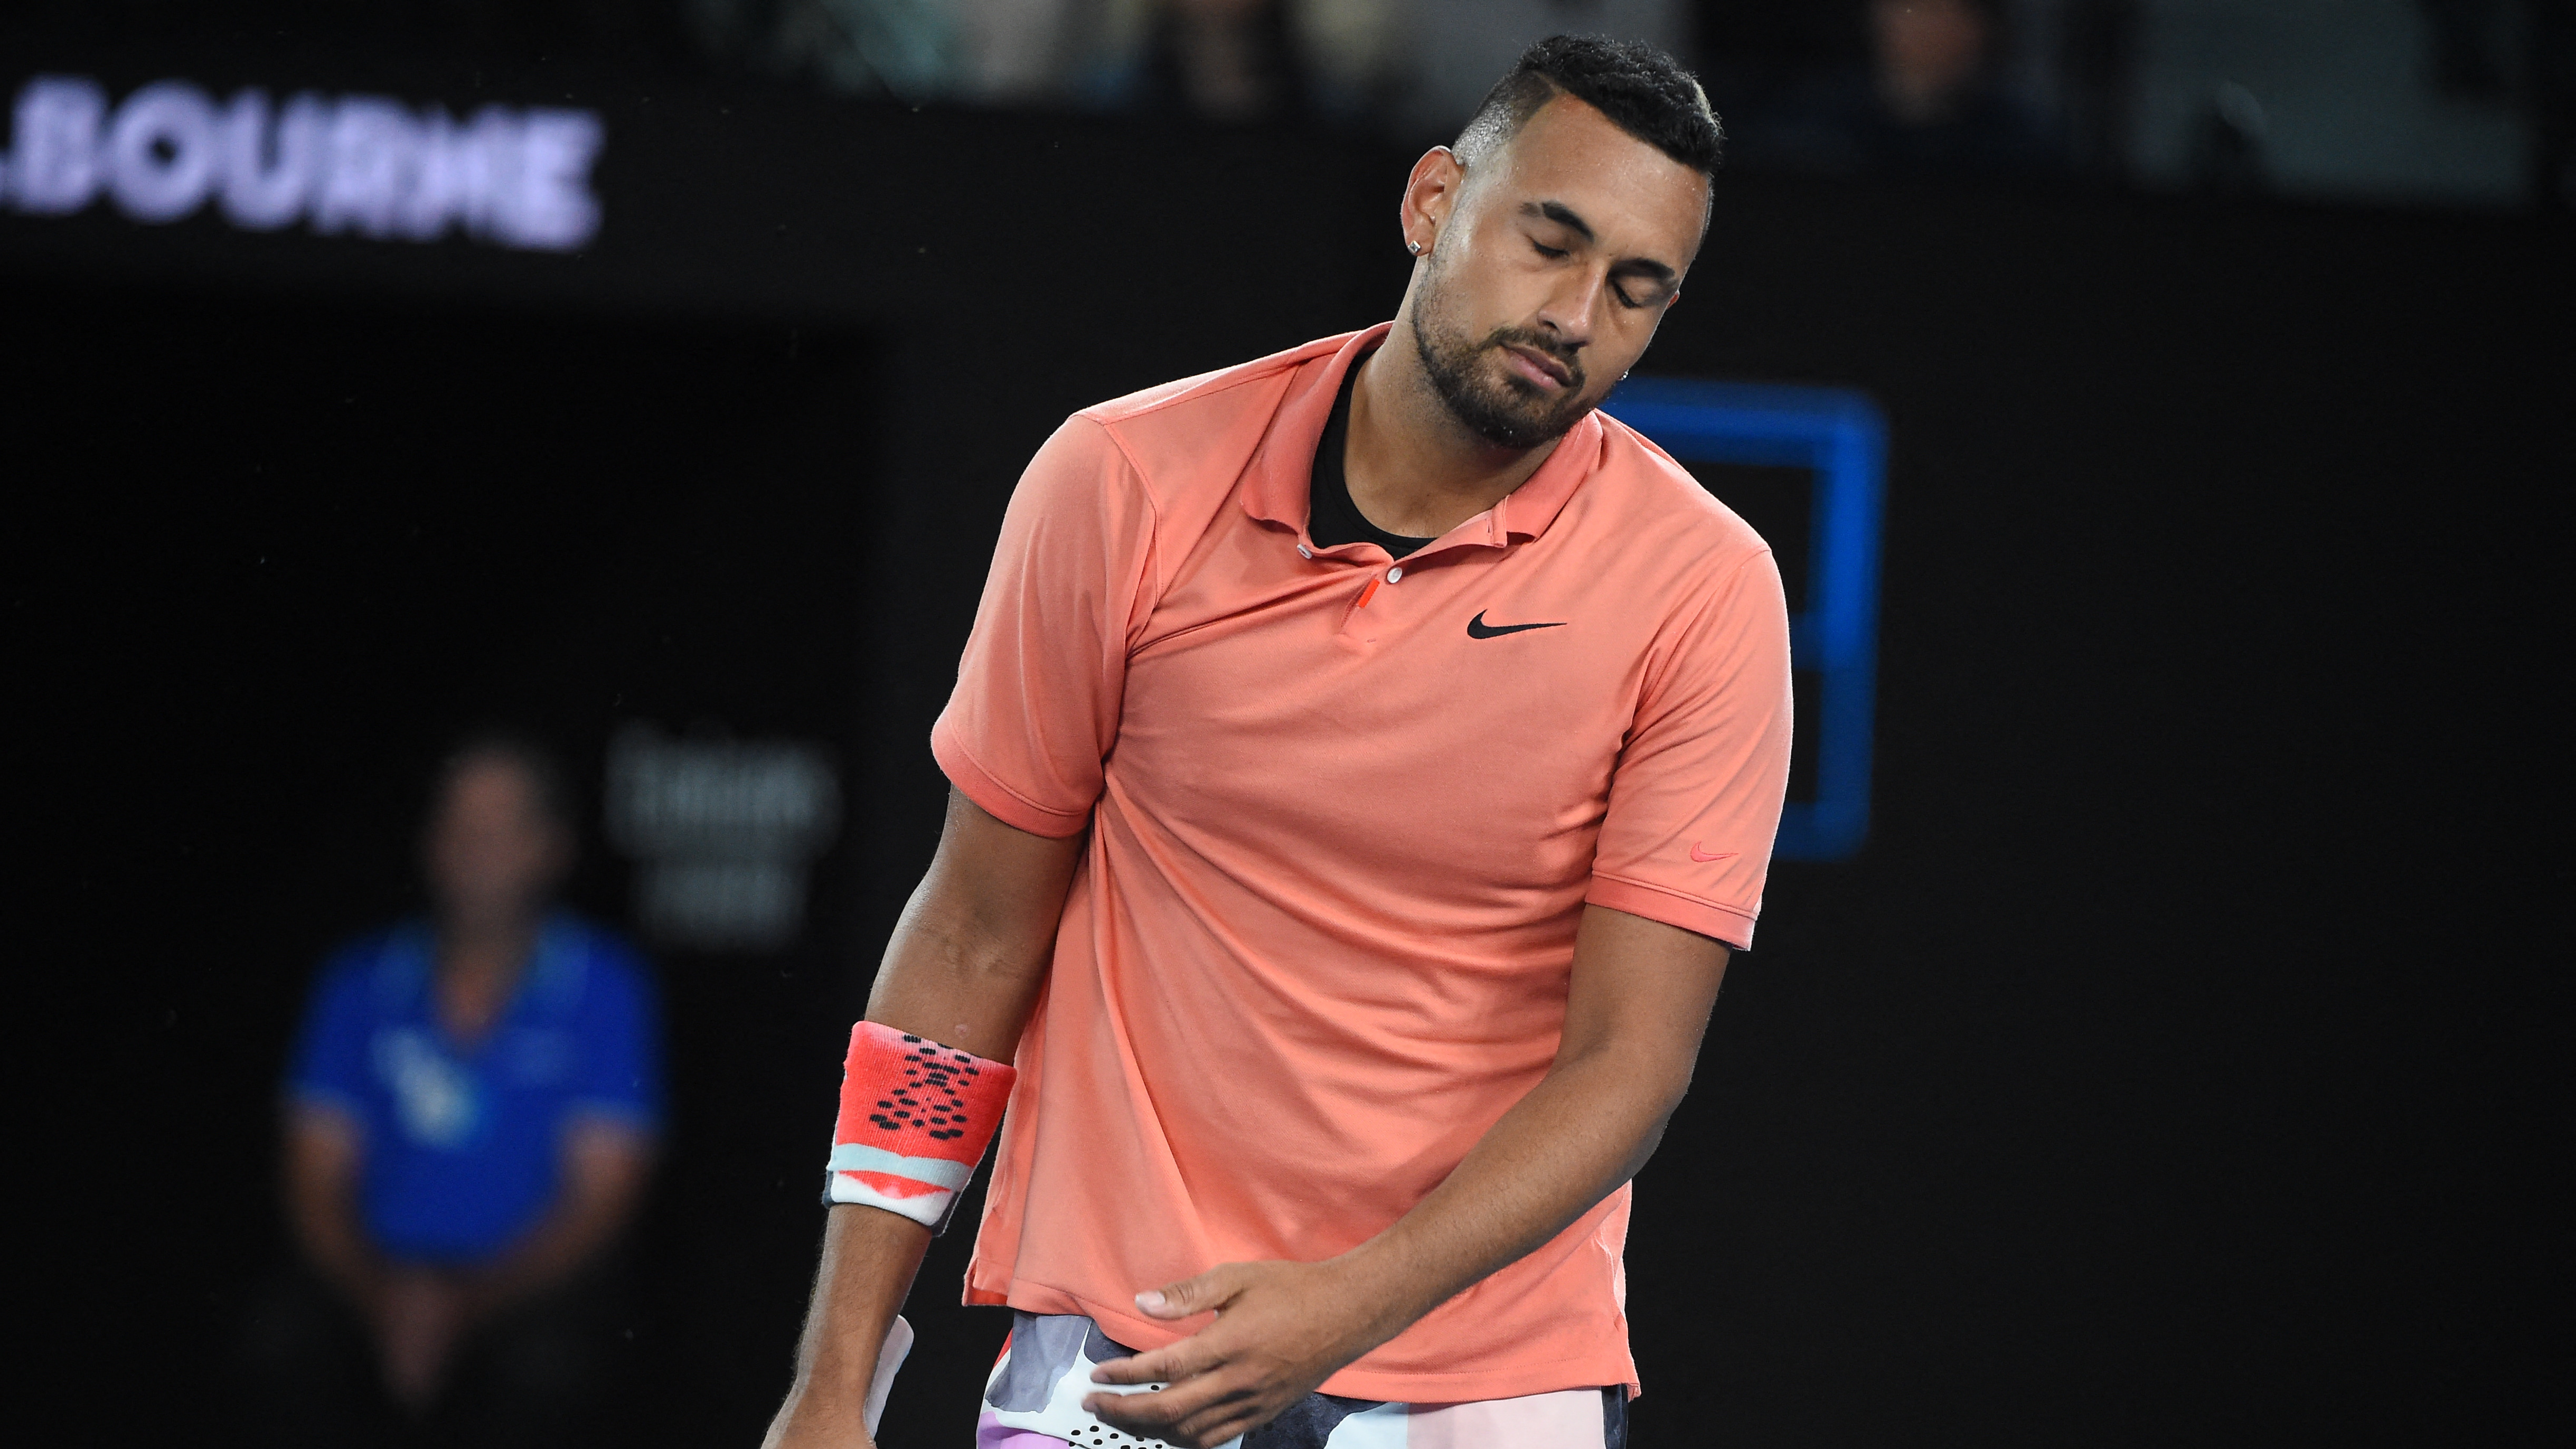 Nick Kyrgios Takes To Twitter To Troll Novak Djokovic Over Us Open Incident Sportbible